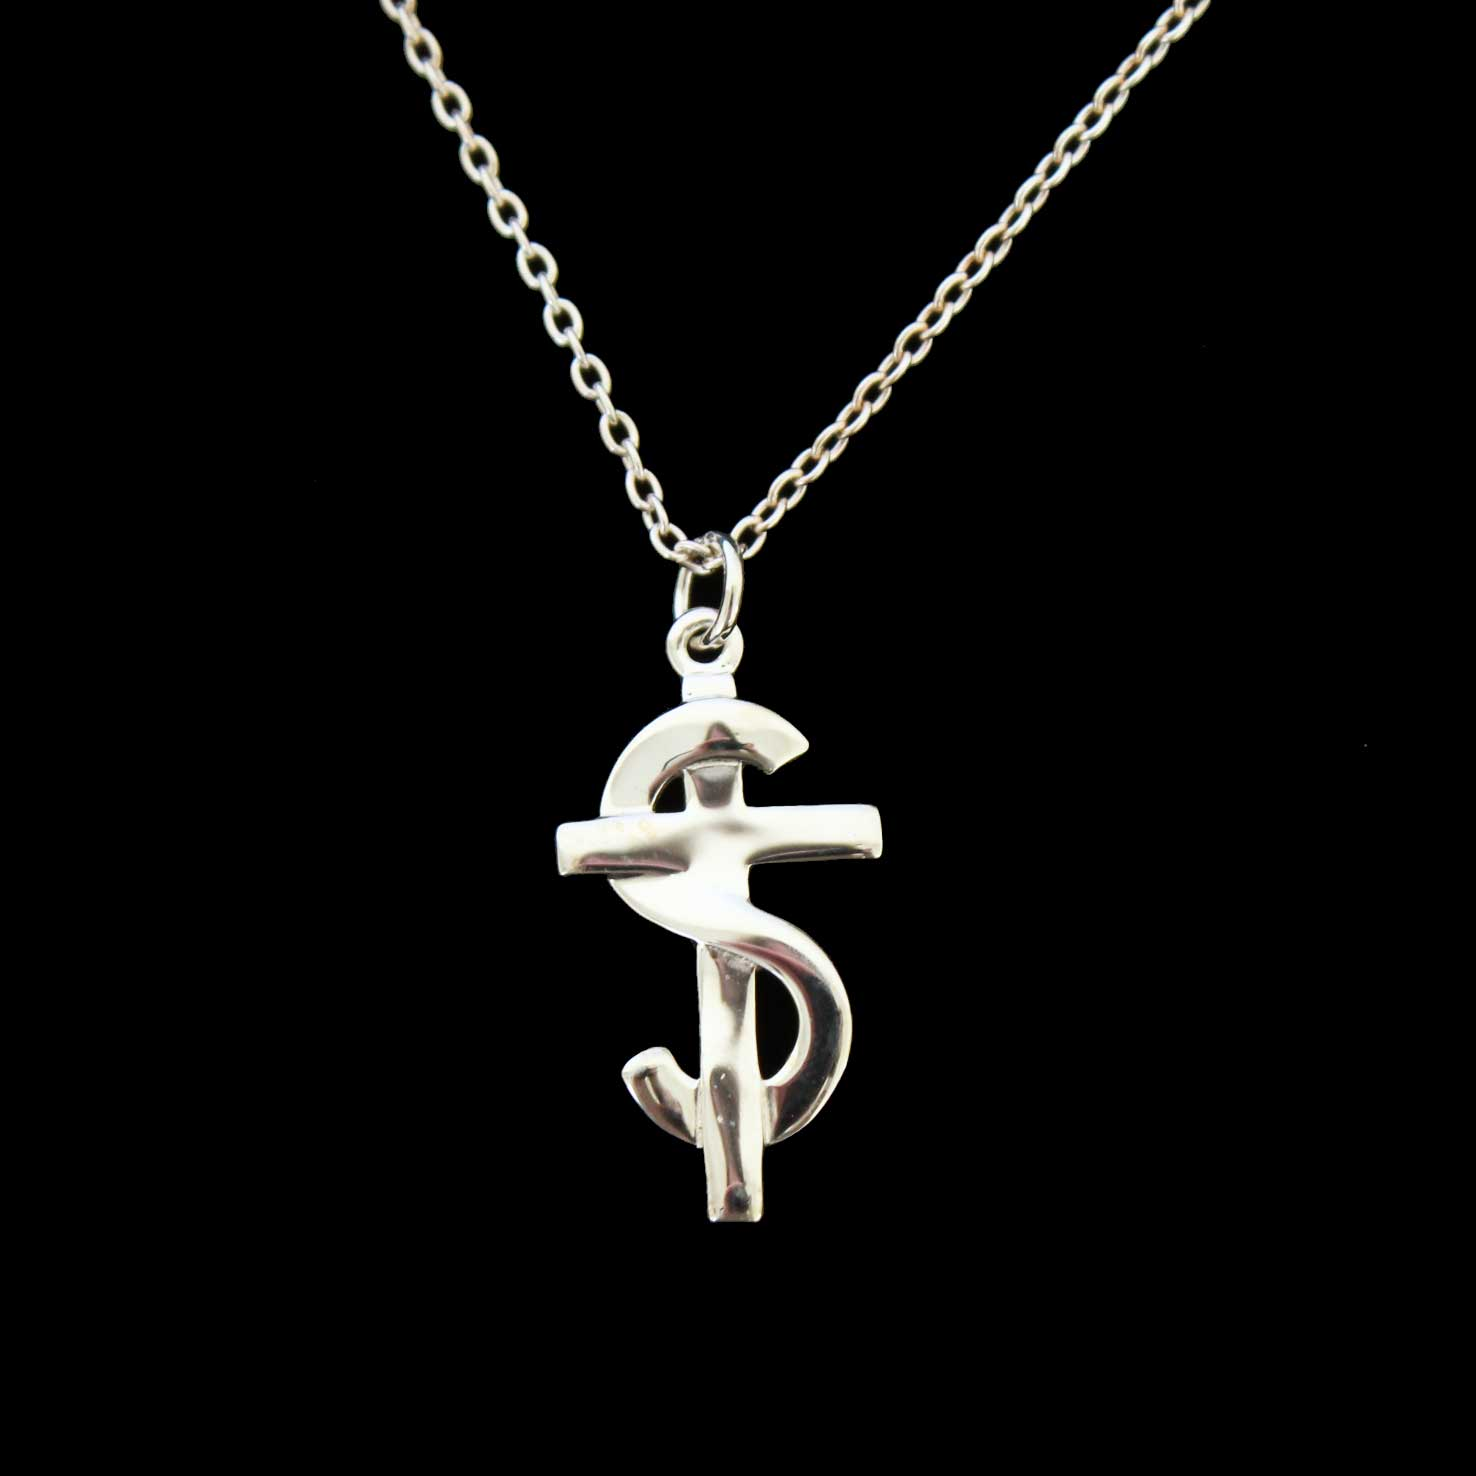 Sterling Silver S and Cross Pendant and Necklace